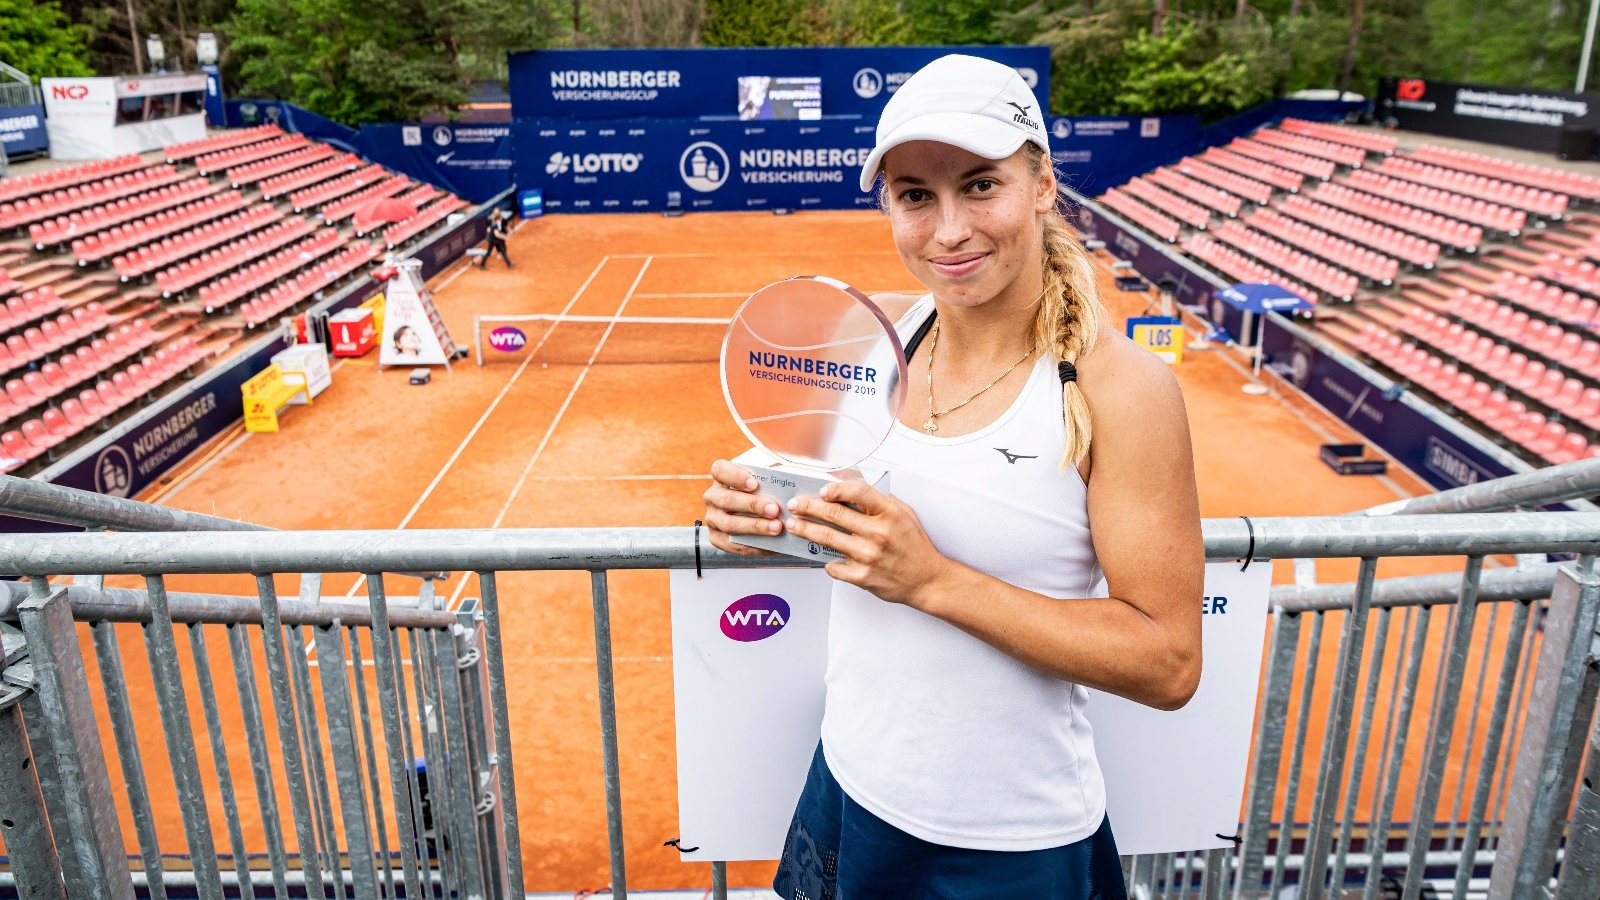 The Czech authorities allowed the holding of the WTA tournament in Ostrava